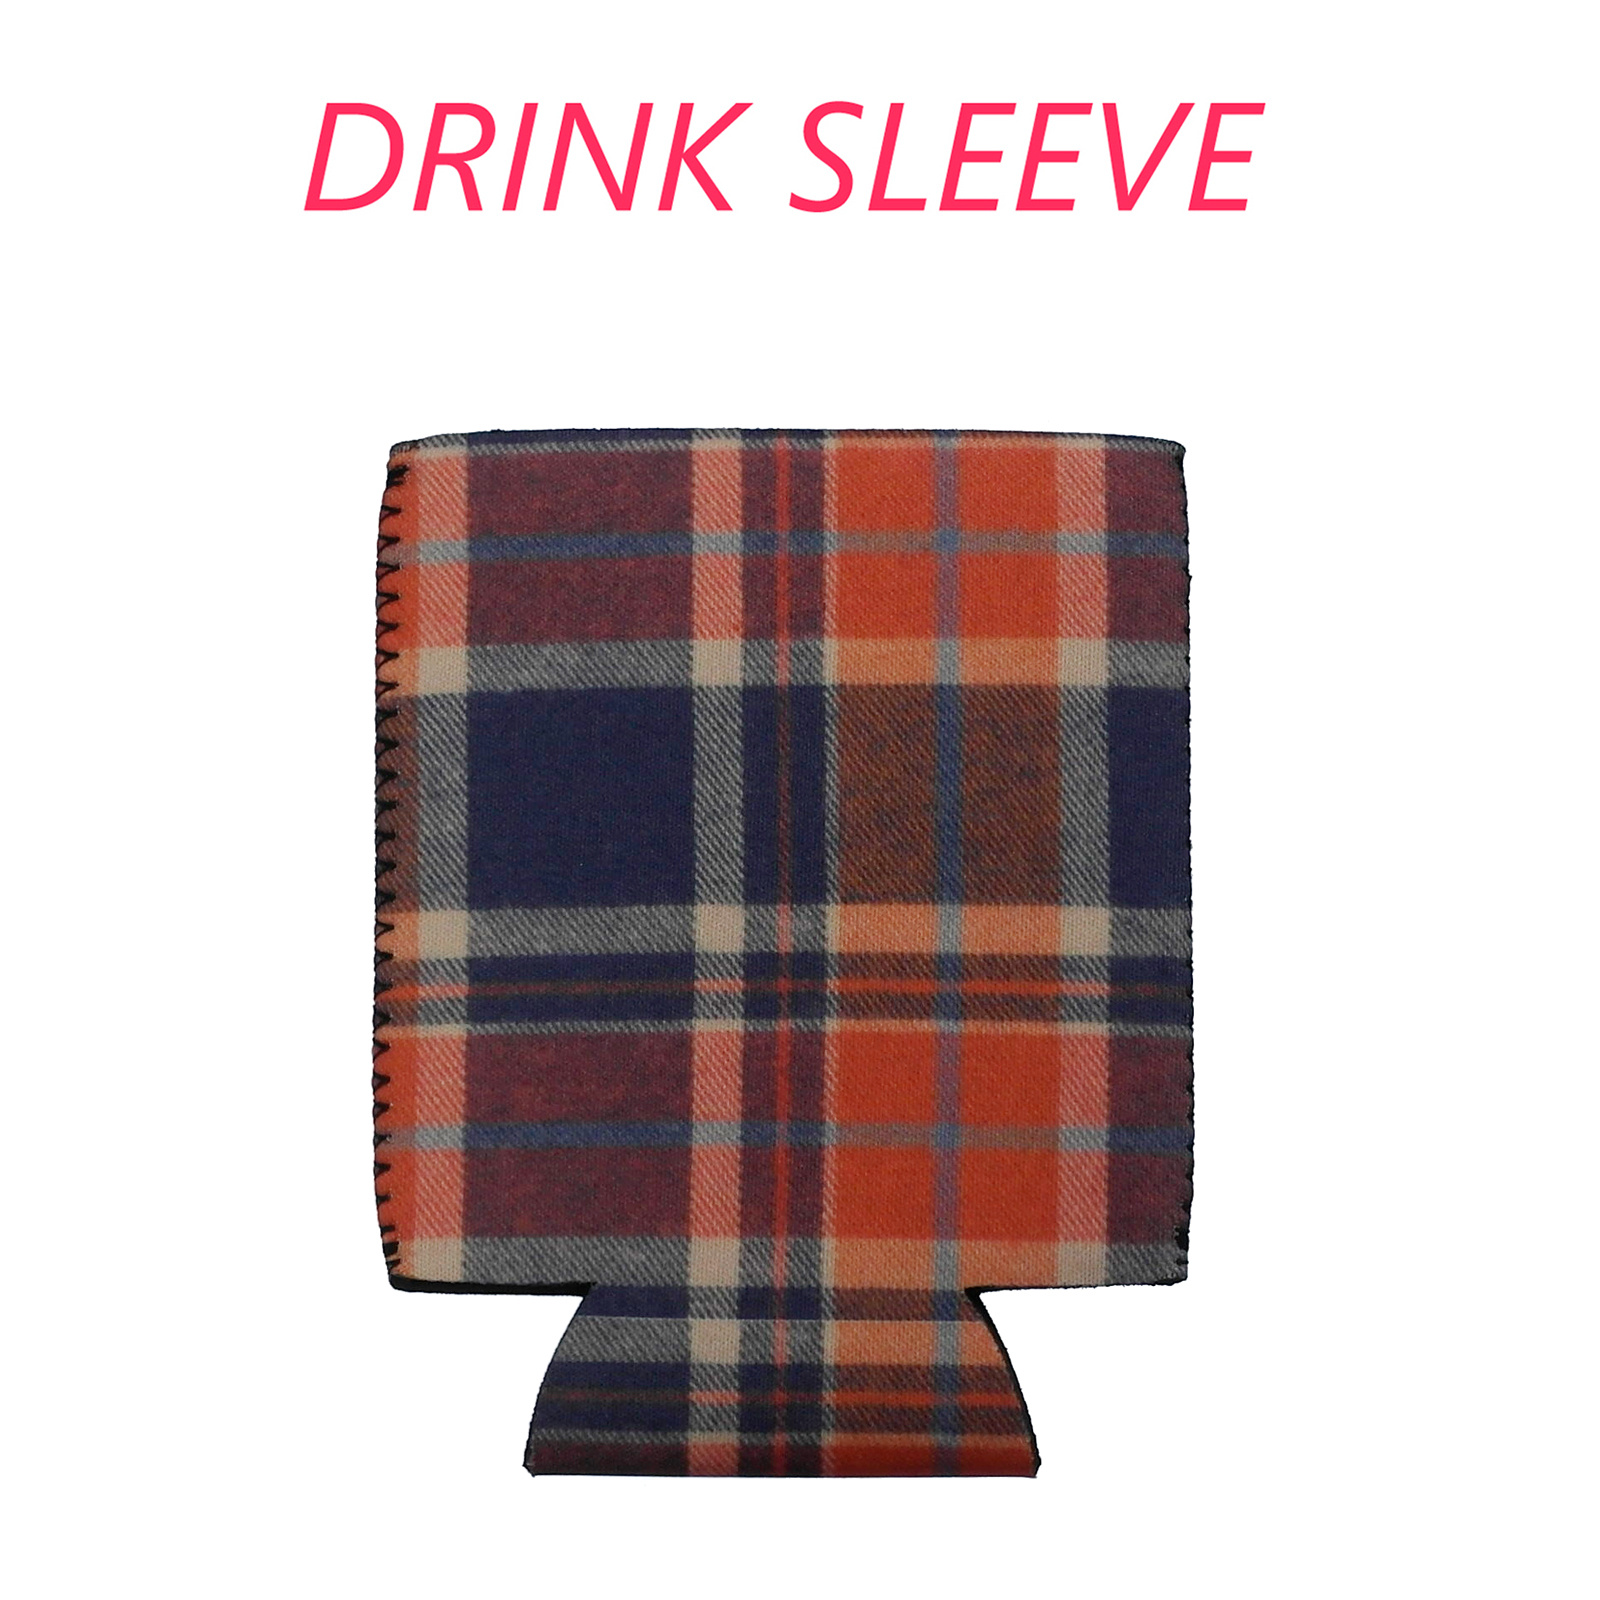 Additional  < Drink Sleeve < Wholesale Drink Sleeve